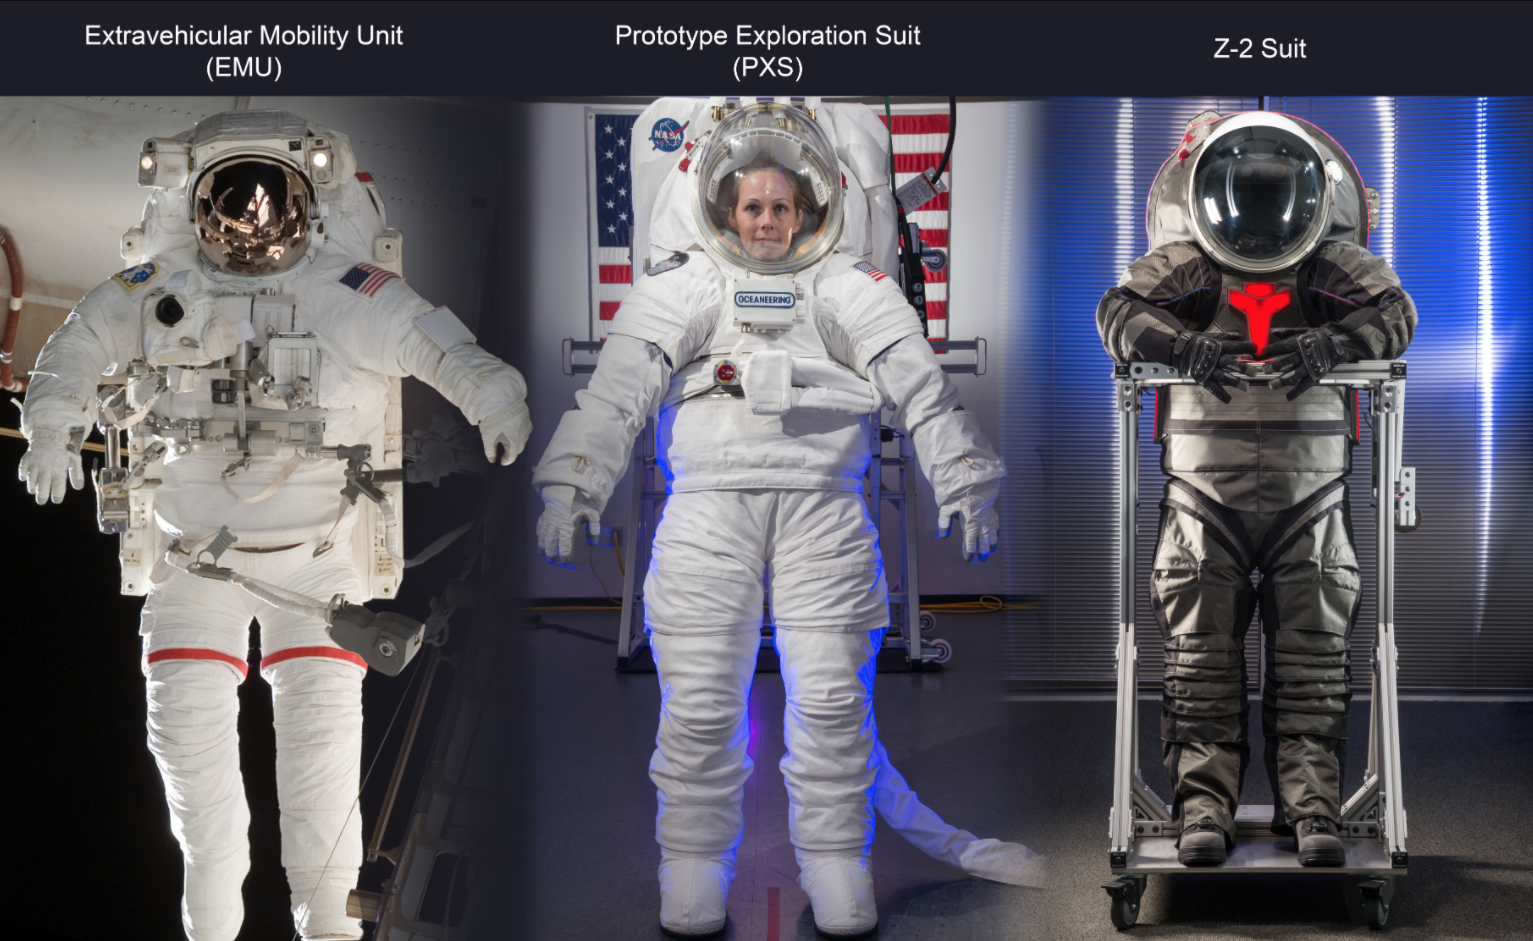 Next-generation spacesuit(s)